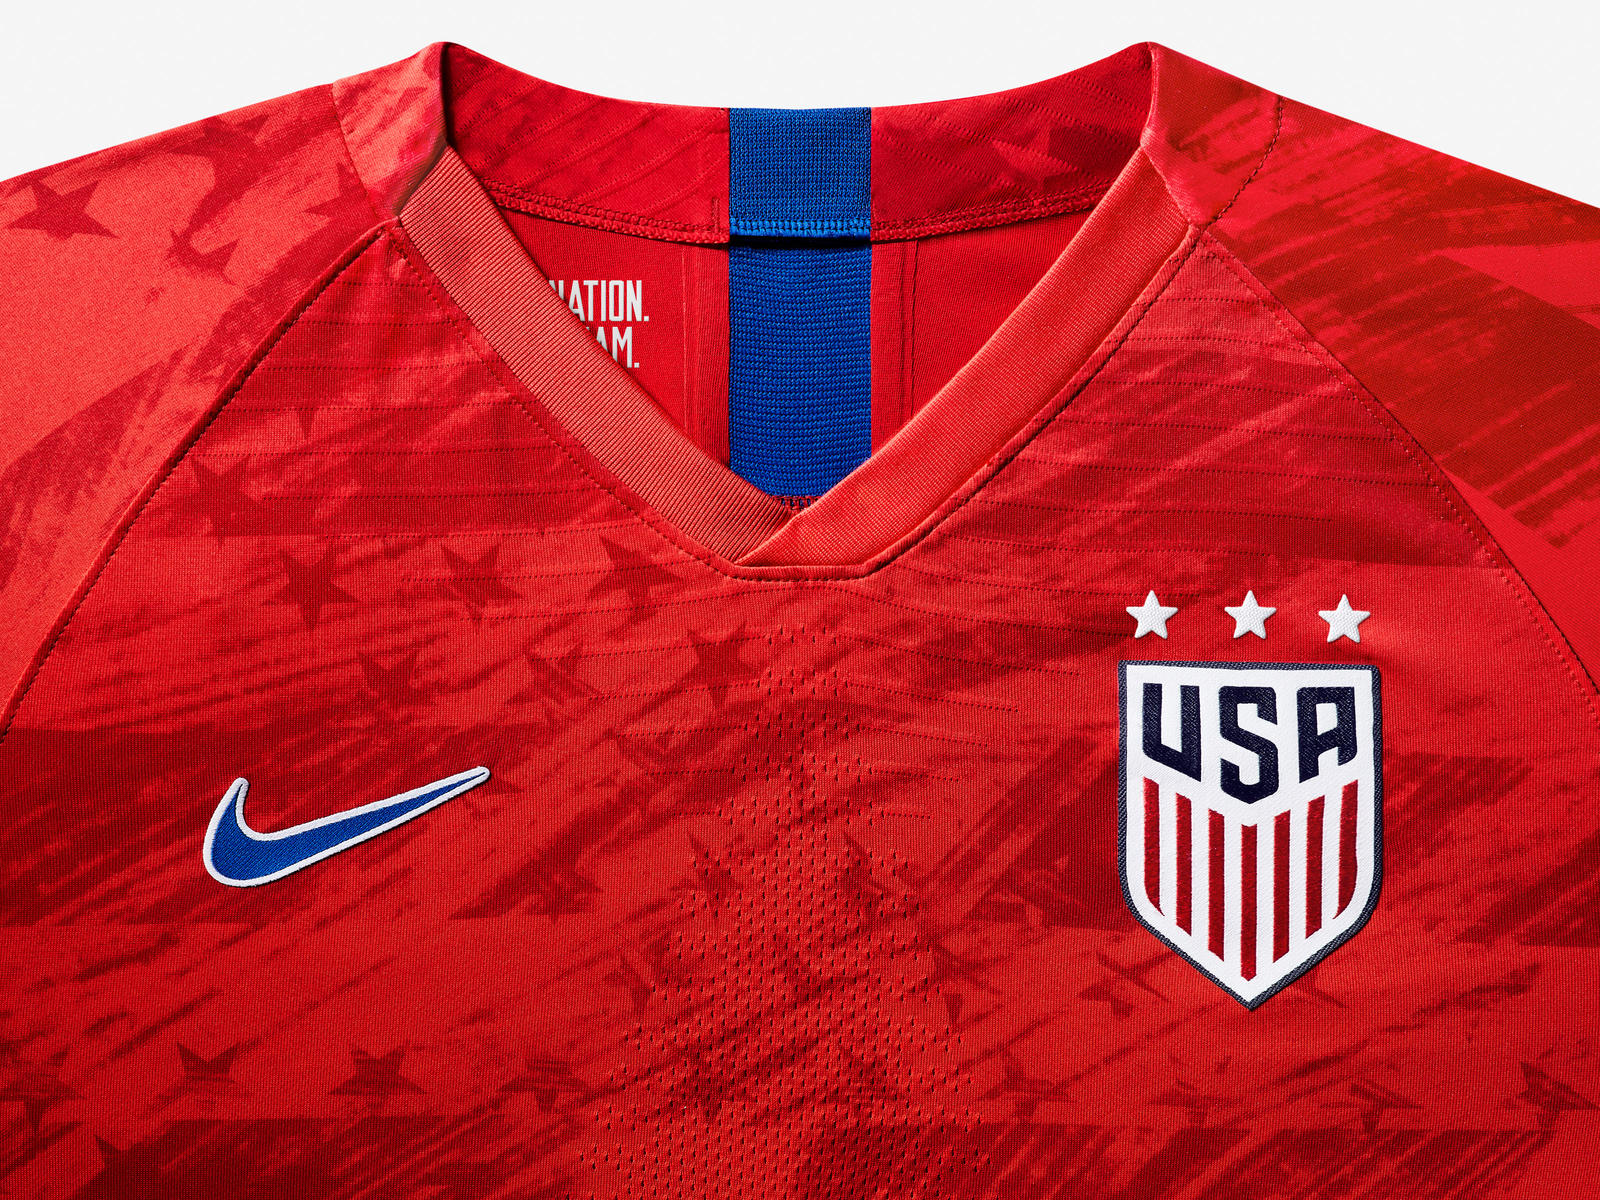 usa-national-team-kit-2019-laydown-001_85924.jpg